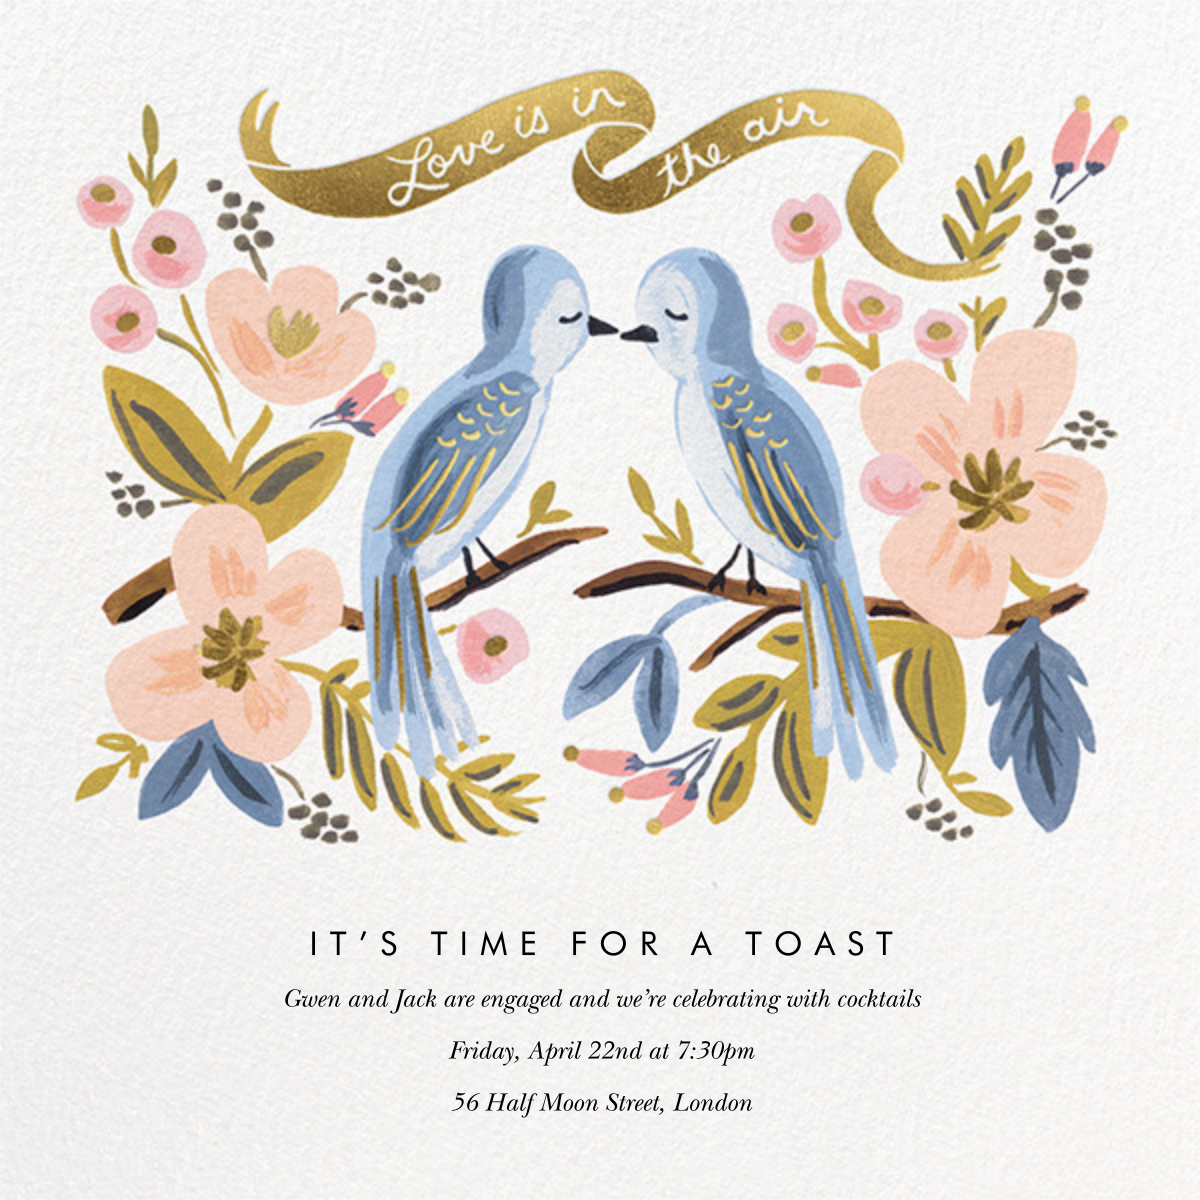 Love is Lighter than Air - Rifle Paper Co. - Engagement party